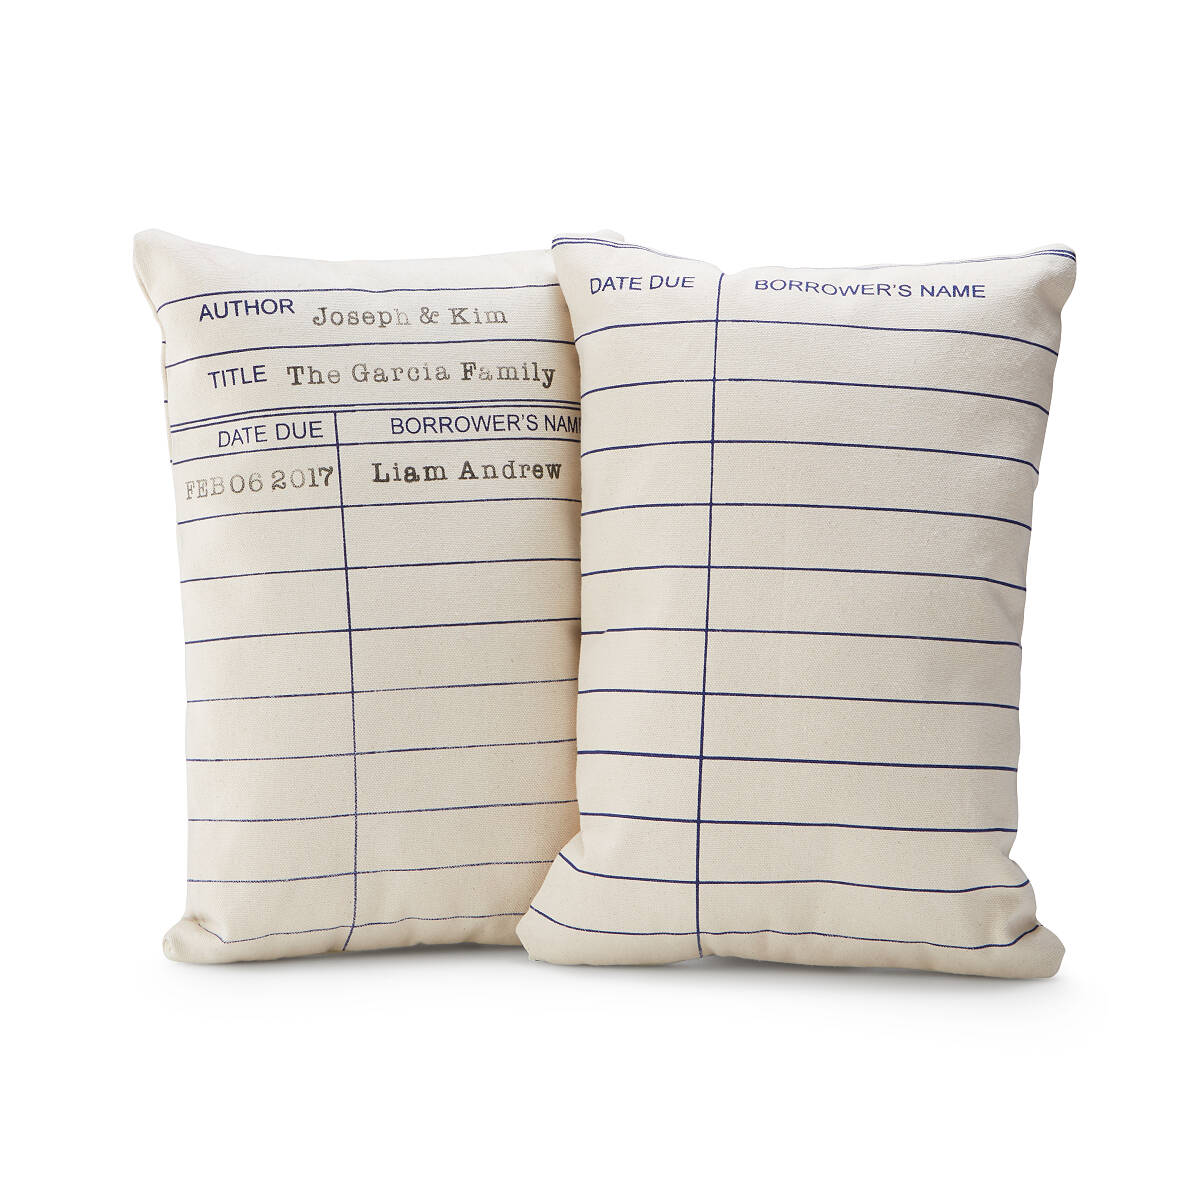 Personalized Library Card Pillow | Throw Pillows, Decorative ...